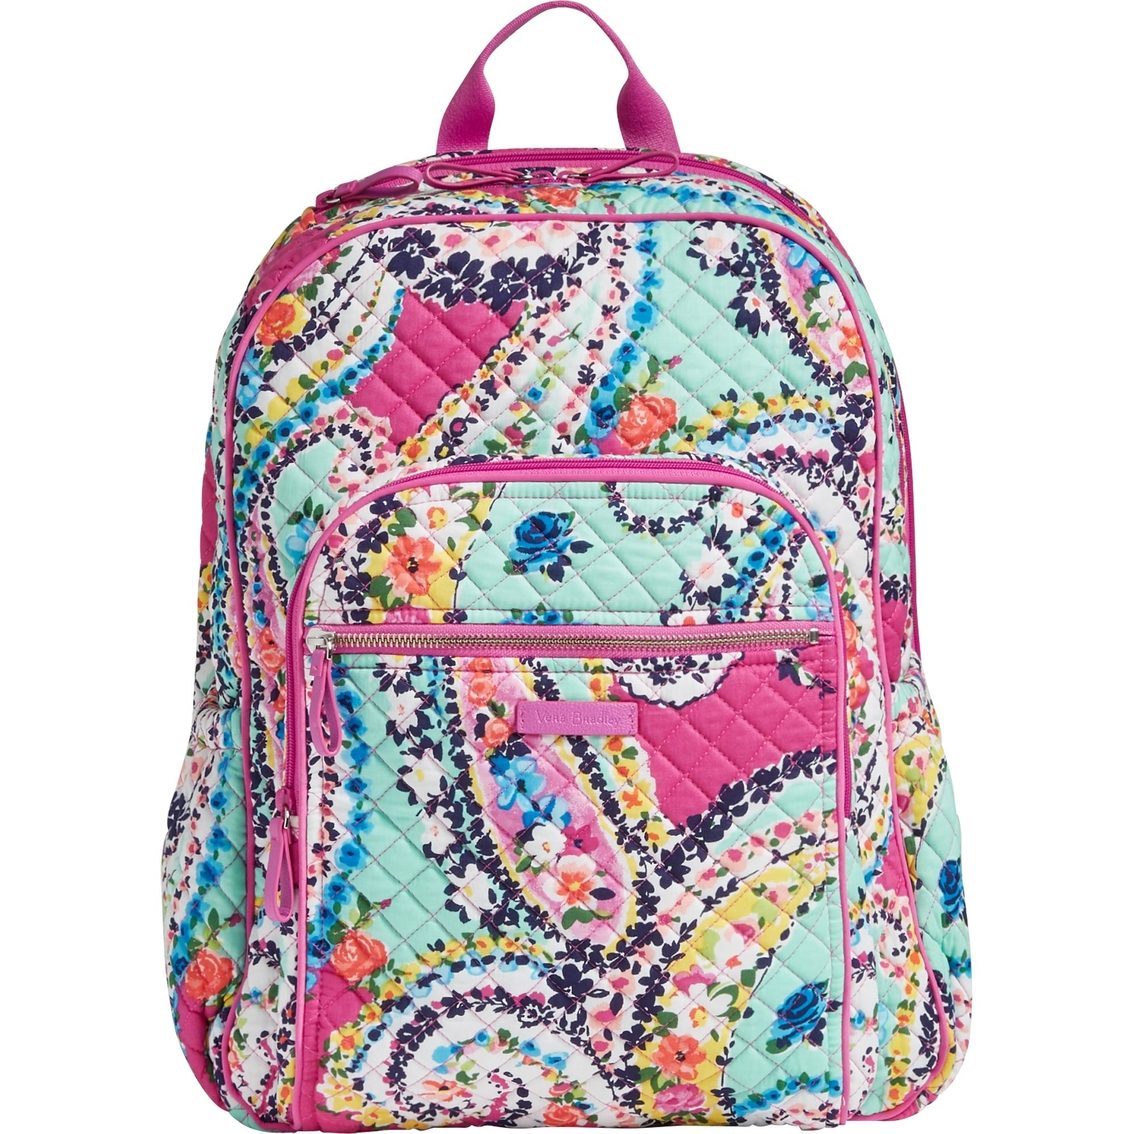 aa18c1a149 Vera Bradley Iconic Campus Backpack